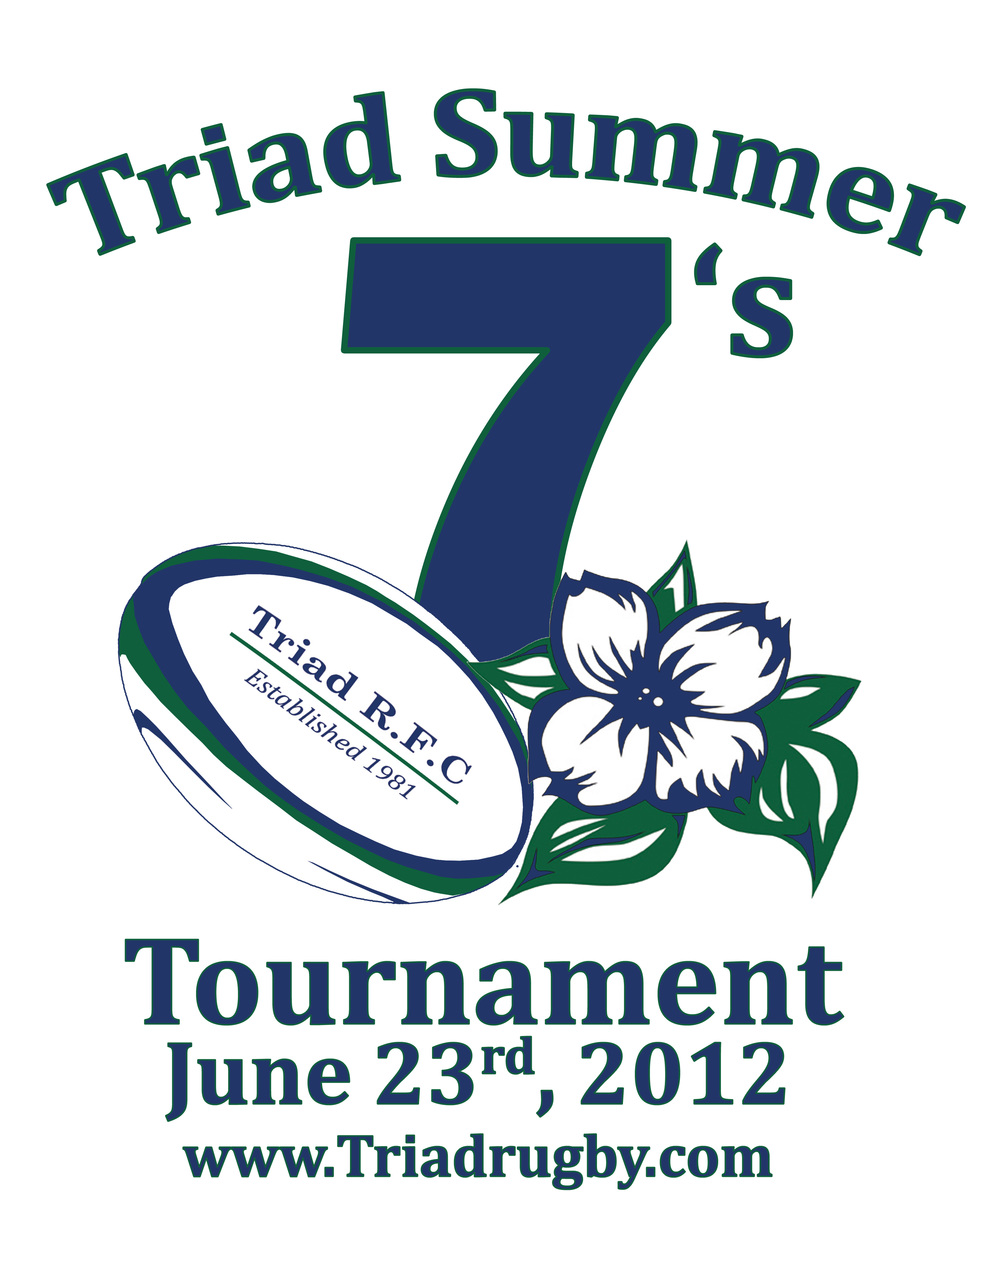 triad sevens tshirt edit (2) copy.jpg